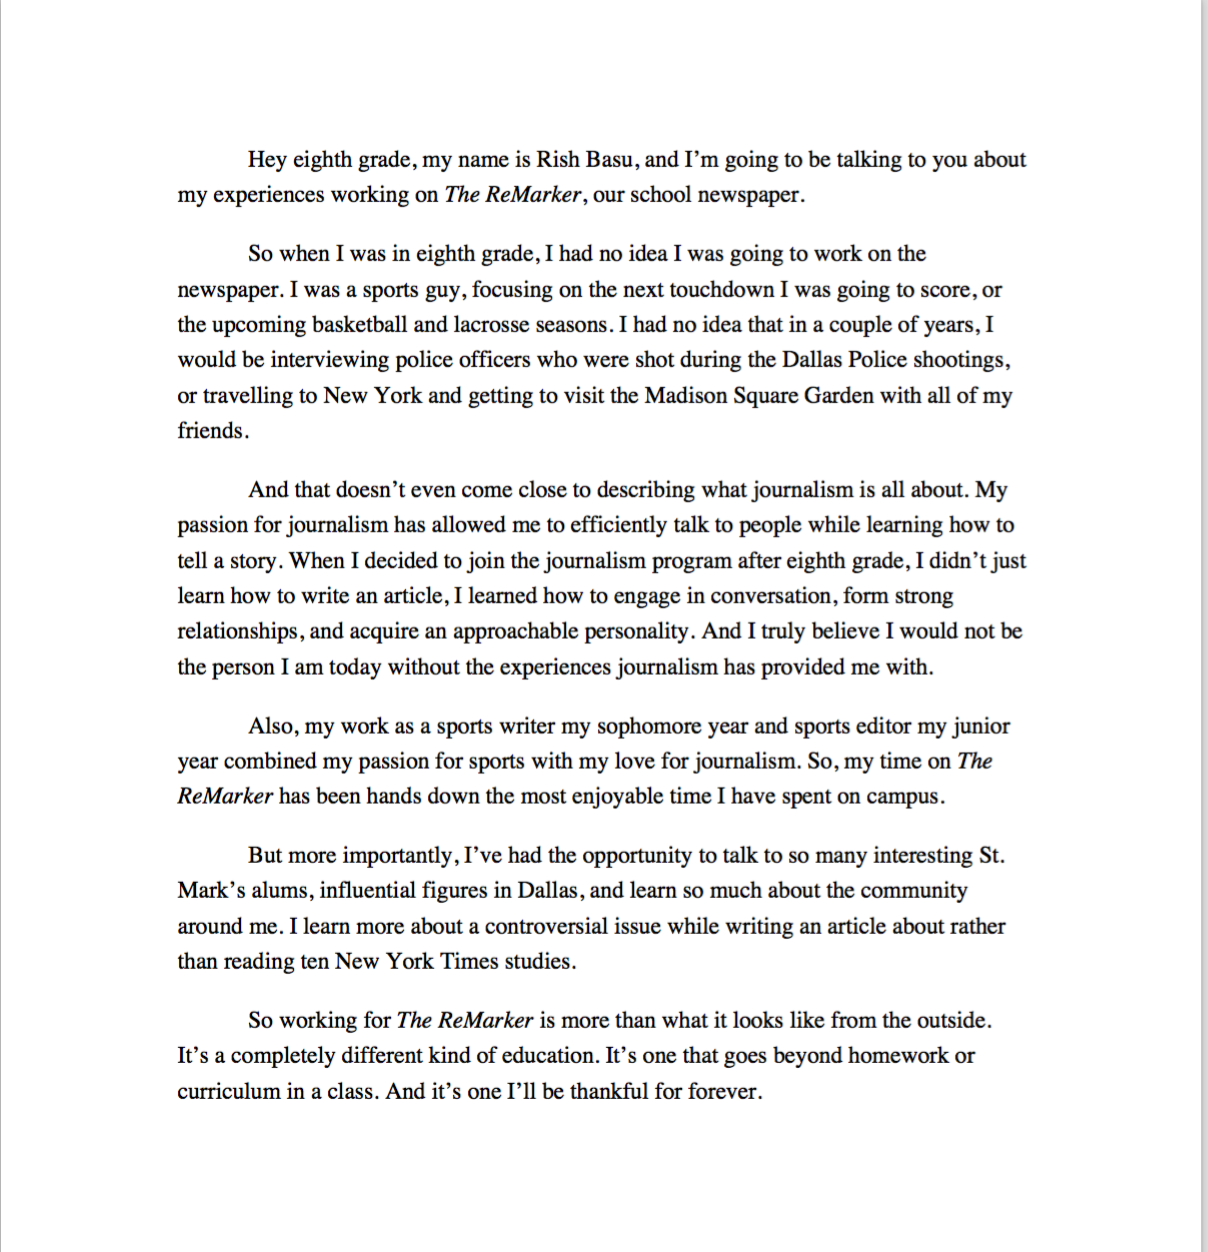 A transcript of the speech I gave to the eighth grade class before my Powerpoint presentation.